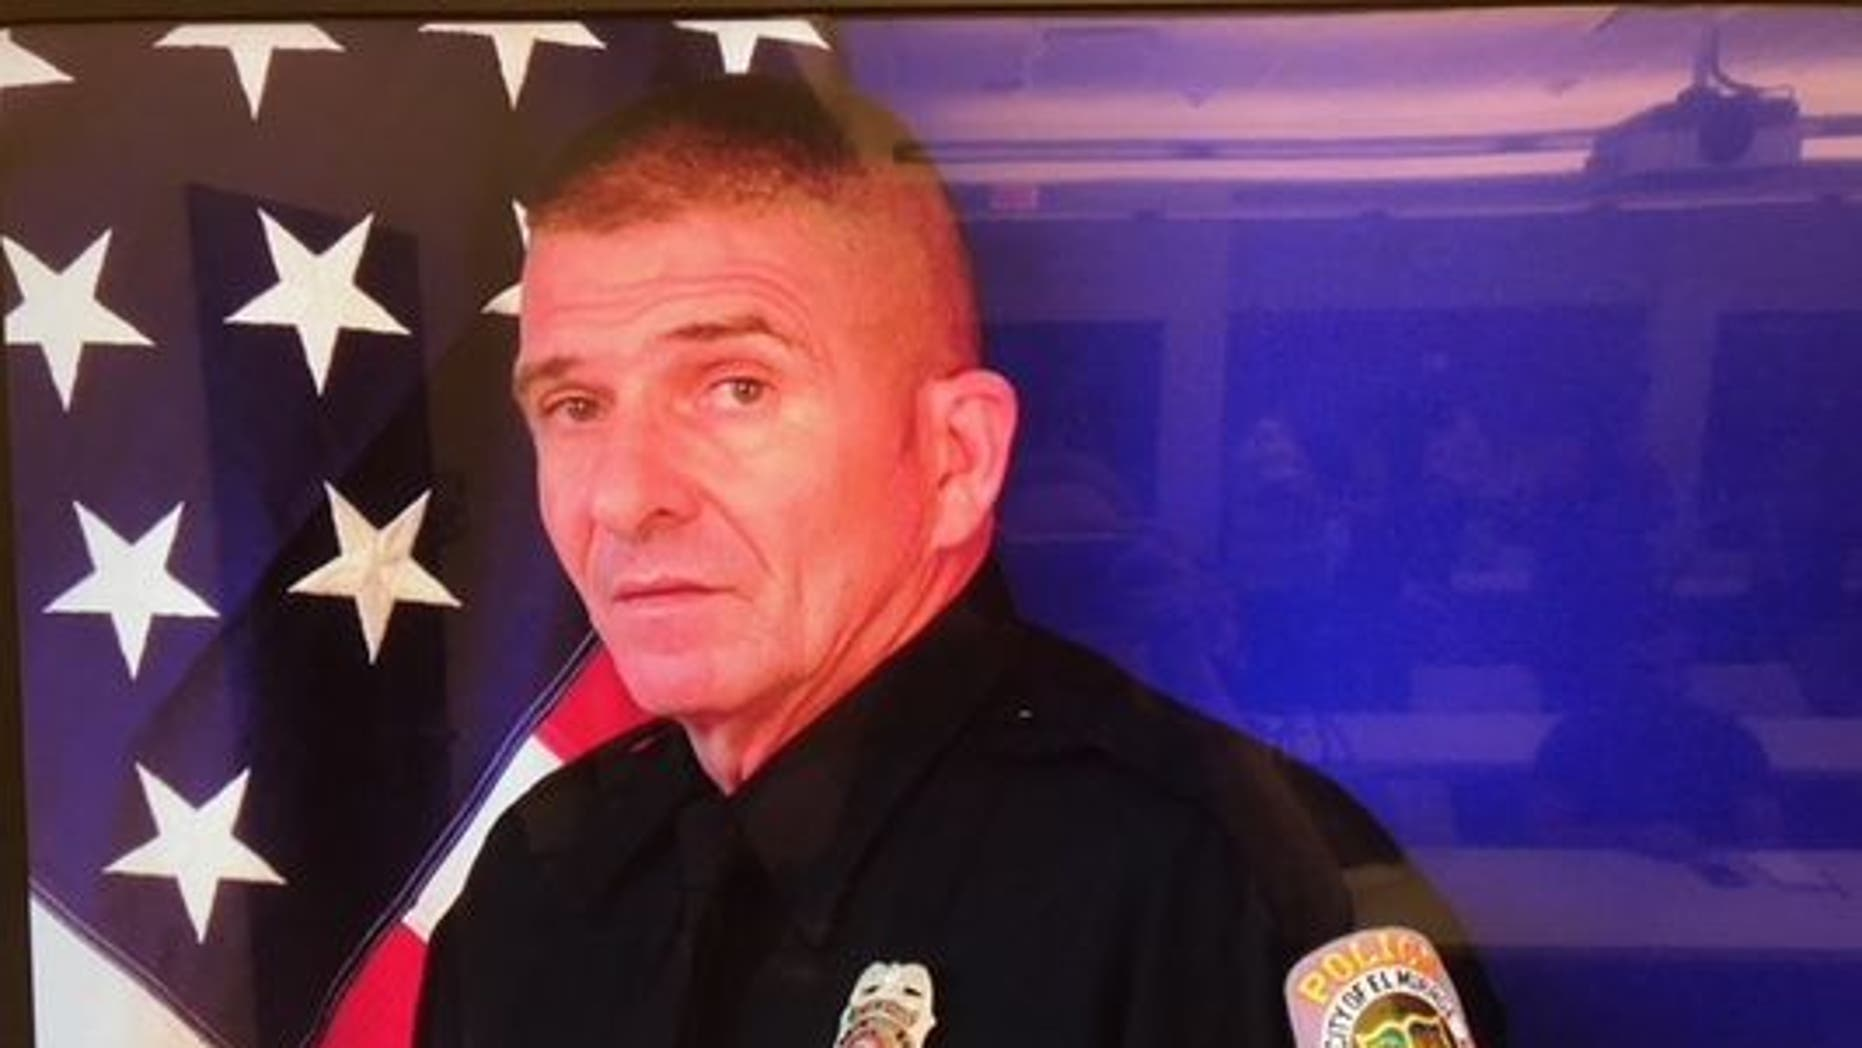 Officer Paul Lazinsky, 58, was a 17-year veteran of the force and was expected to retire next year, reports said.